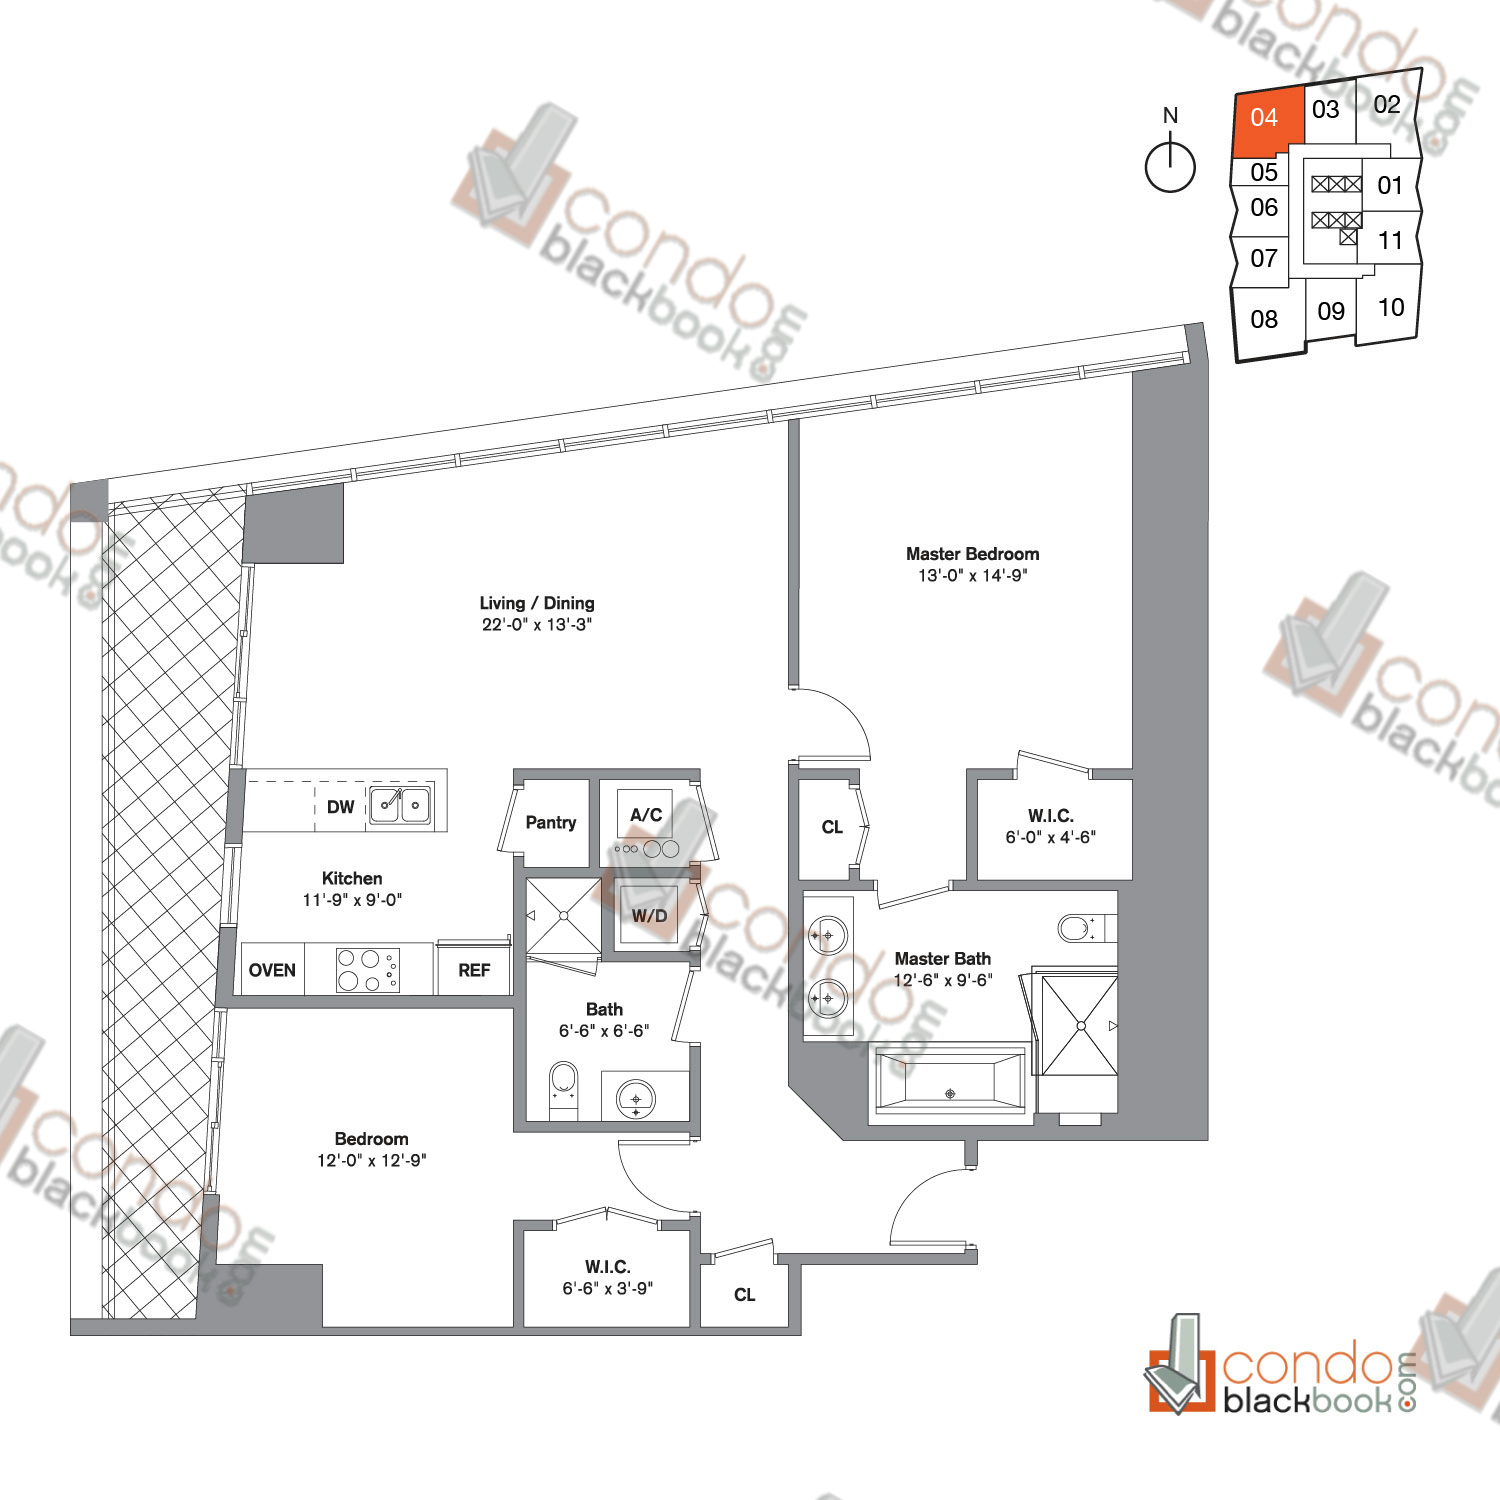 Floor plan for Icon Brickell Viceroy Brickell Miami, model Unit D, line 04,  2/2 bedrooms, 1,286 sq ft